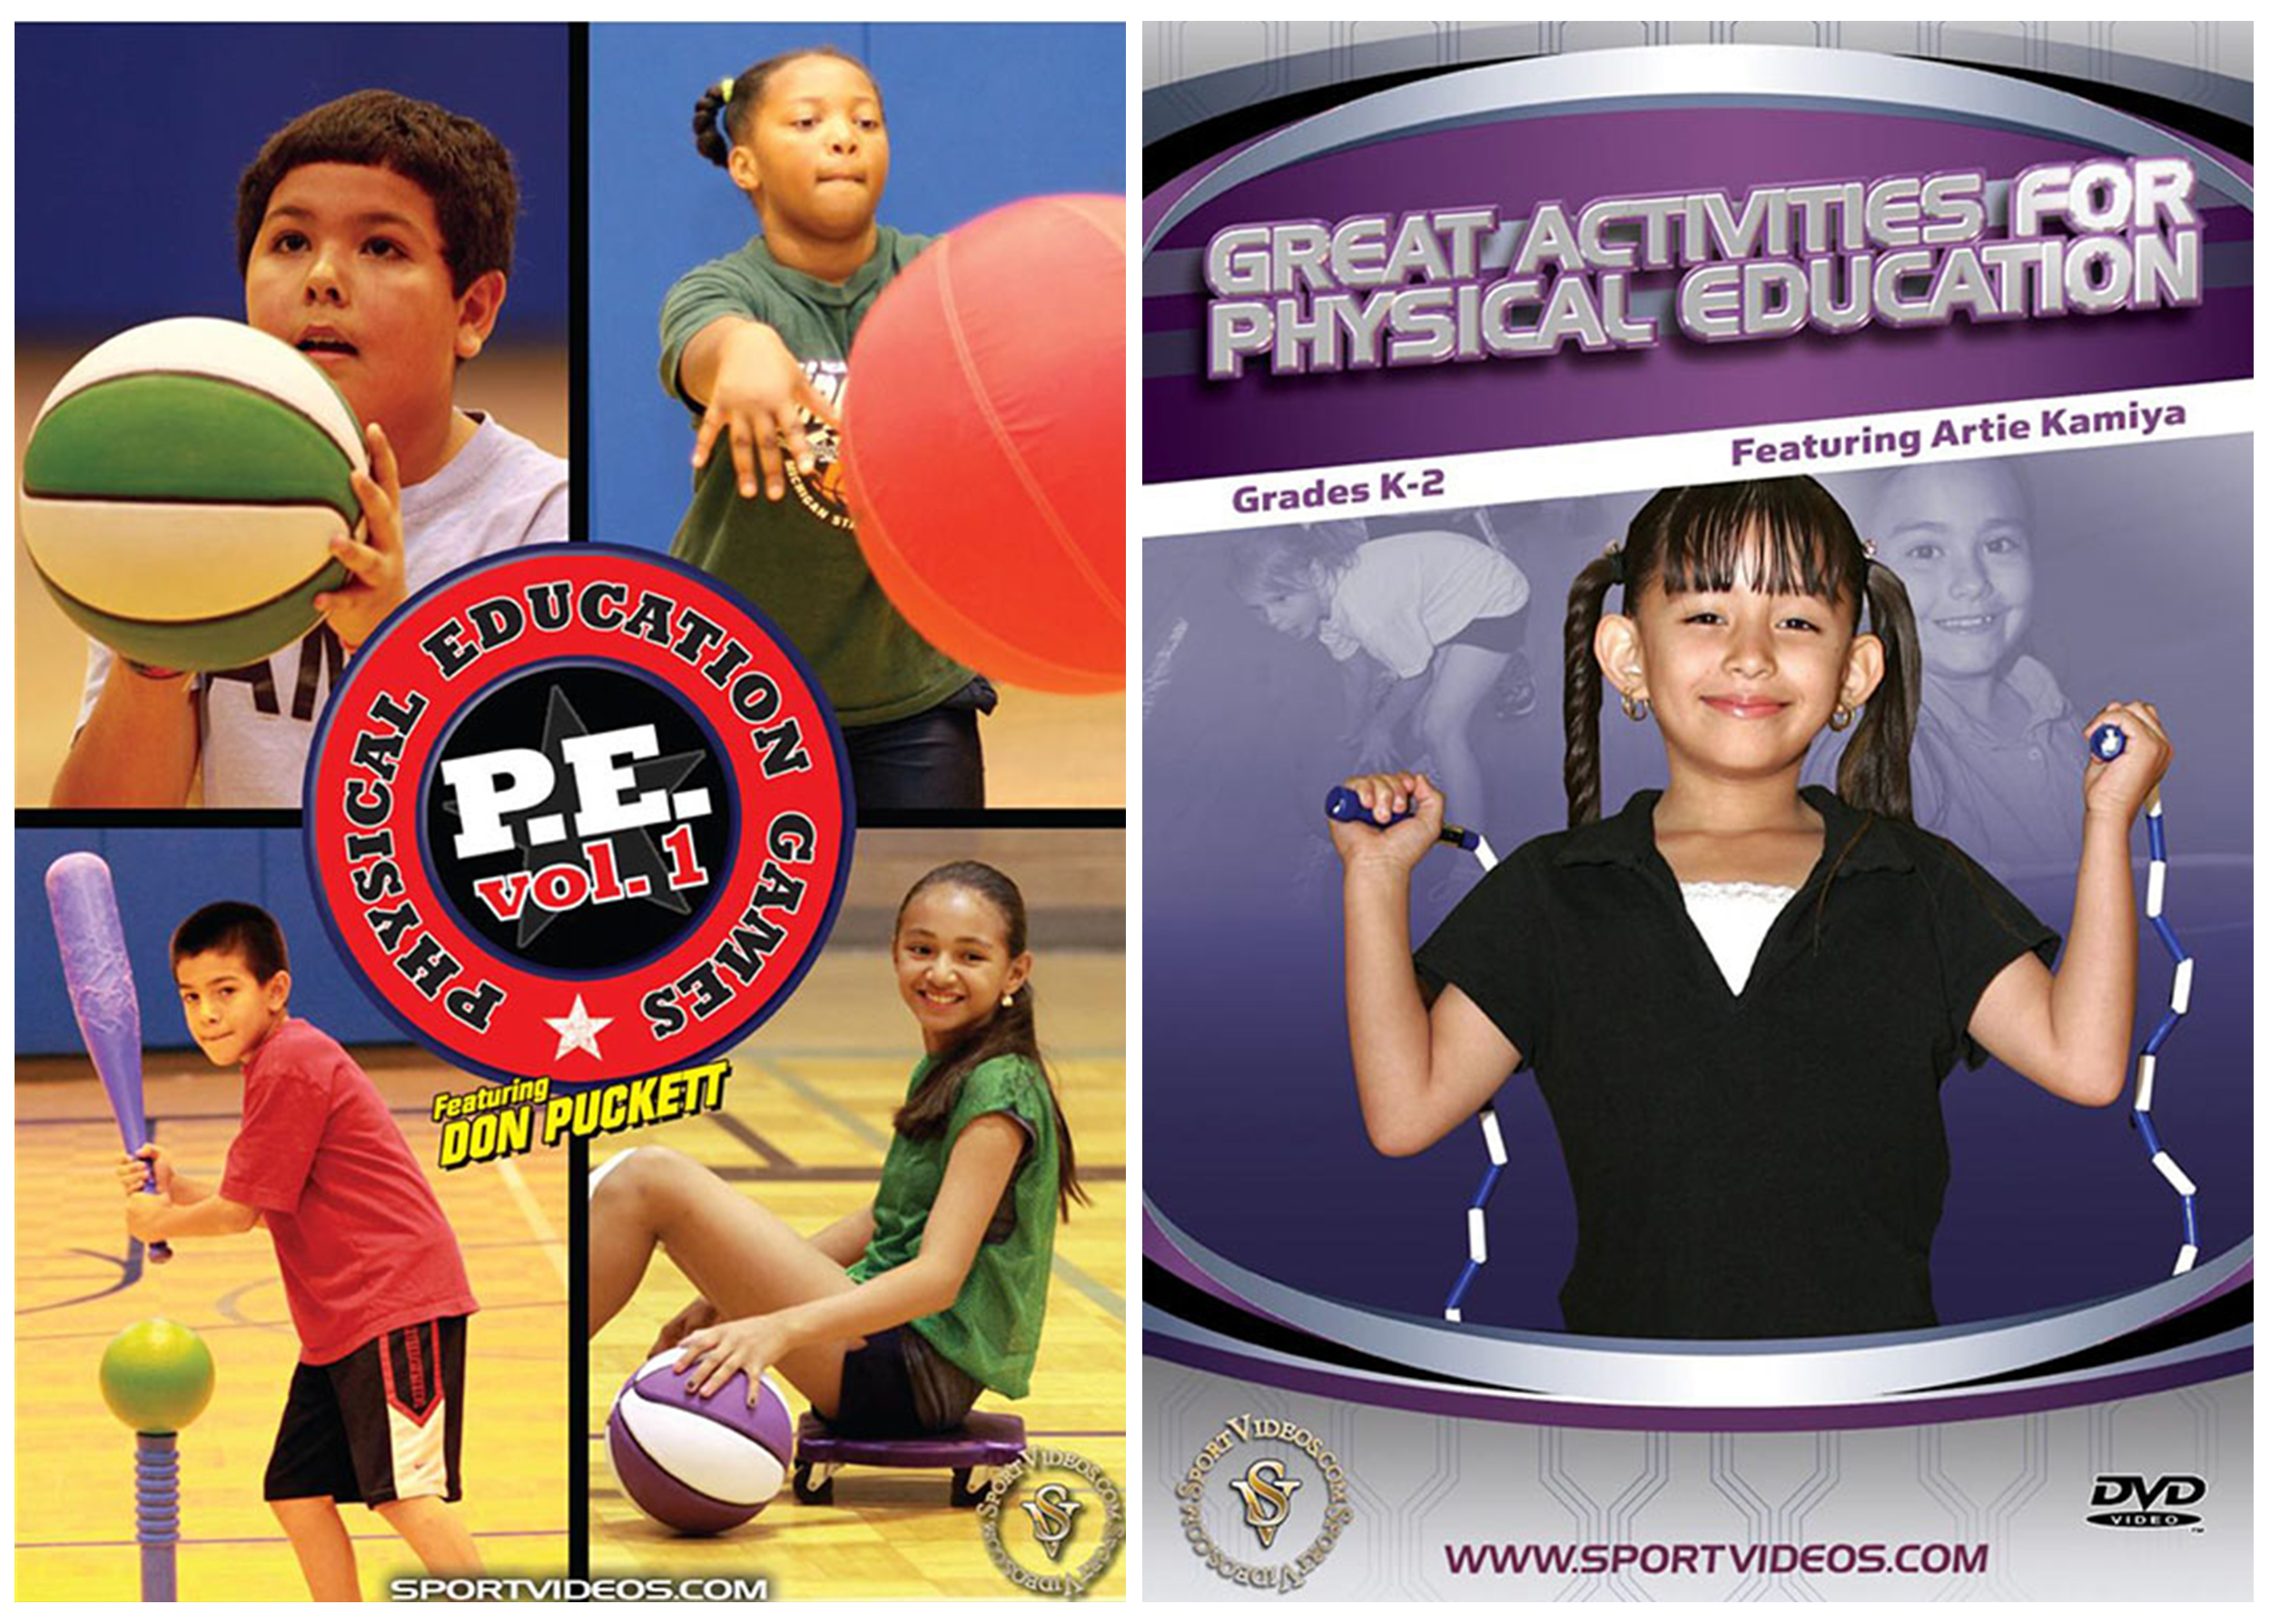 Physical Education 2 DVD Set